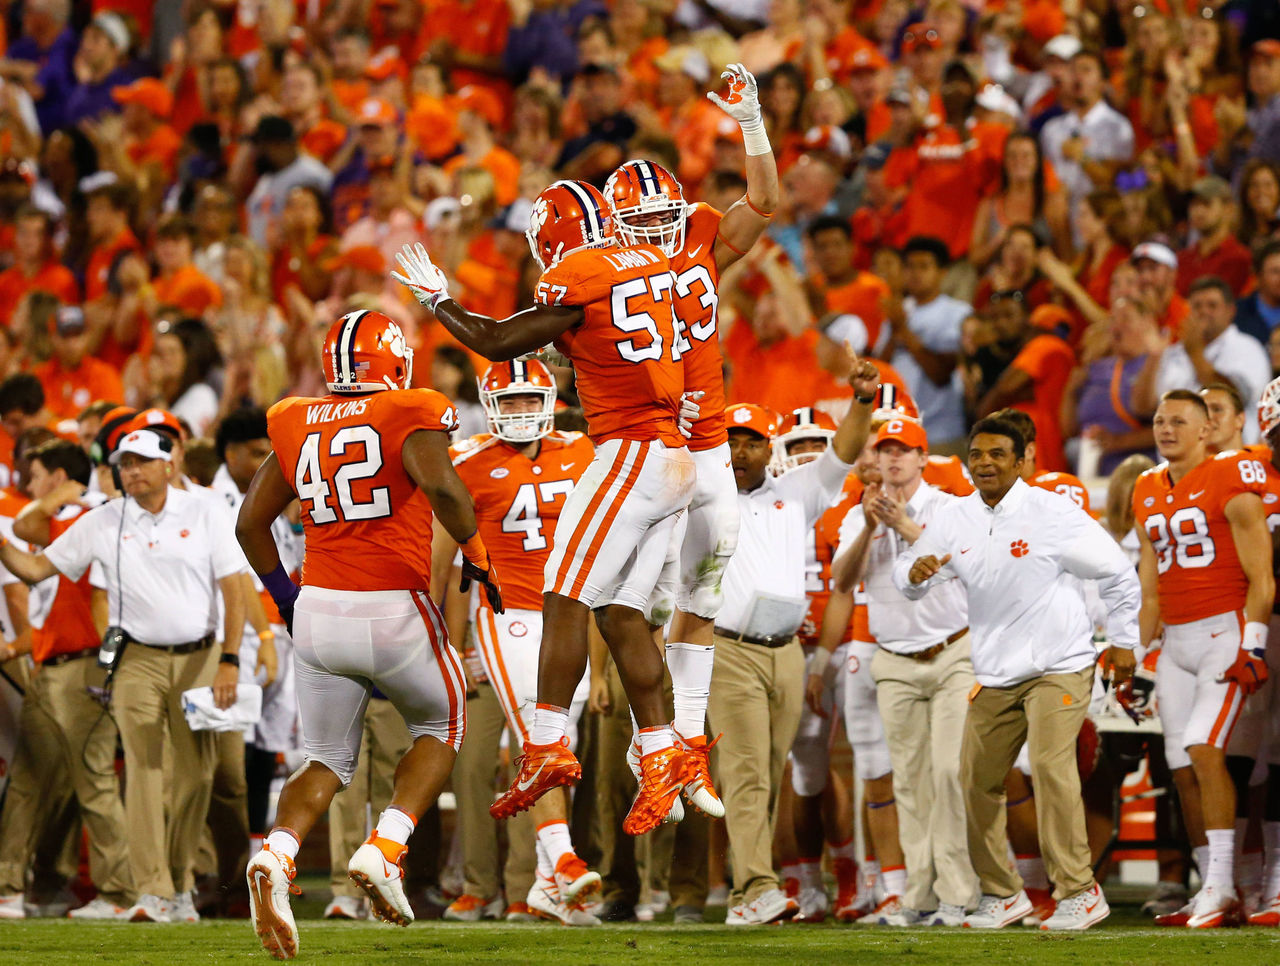 Cropped 2017 09 10t015347z 1024591080 nocid rtrmadp 3 ncaa football auburn at clemson